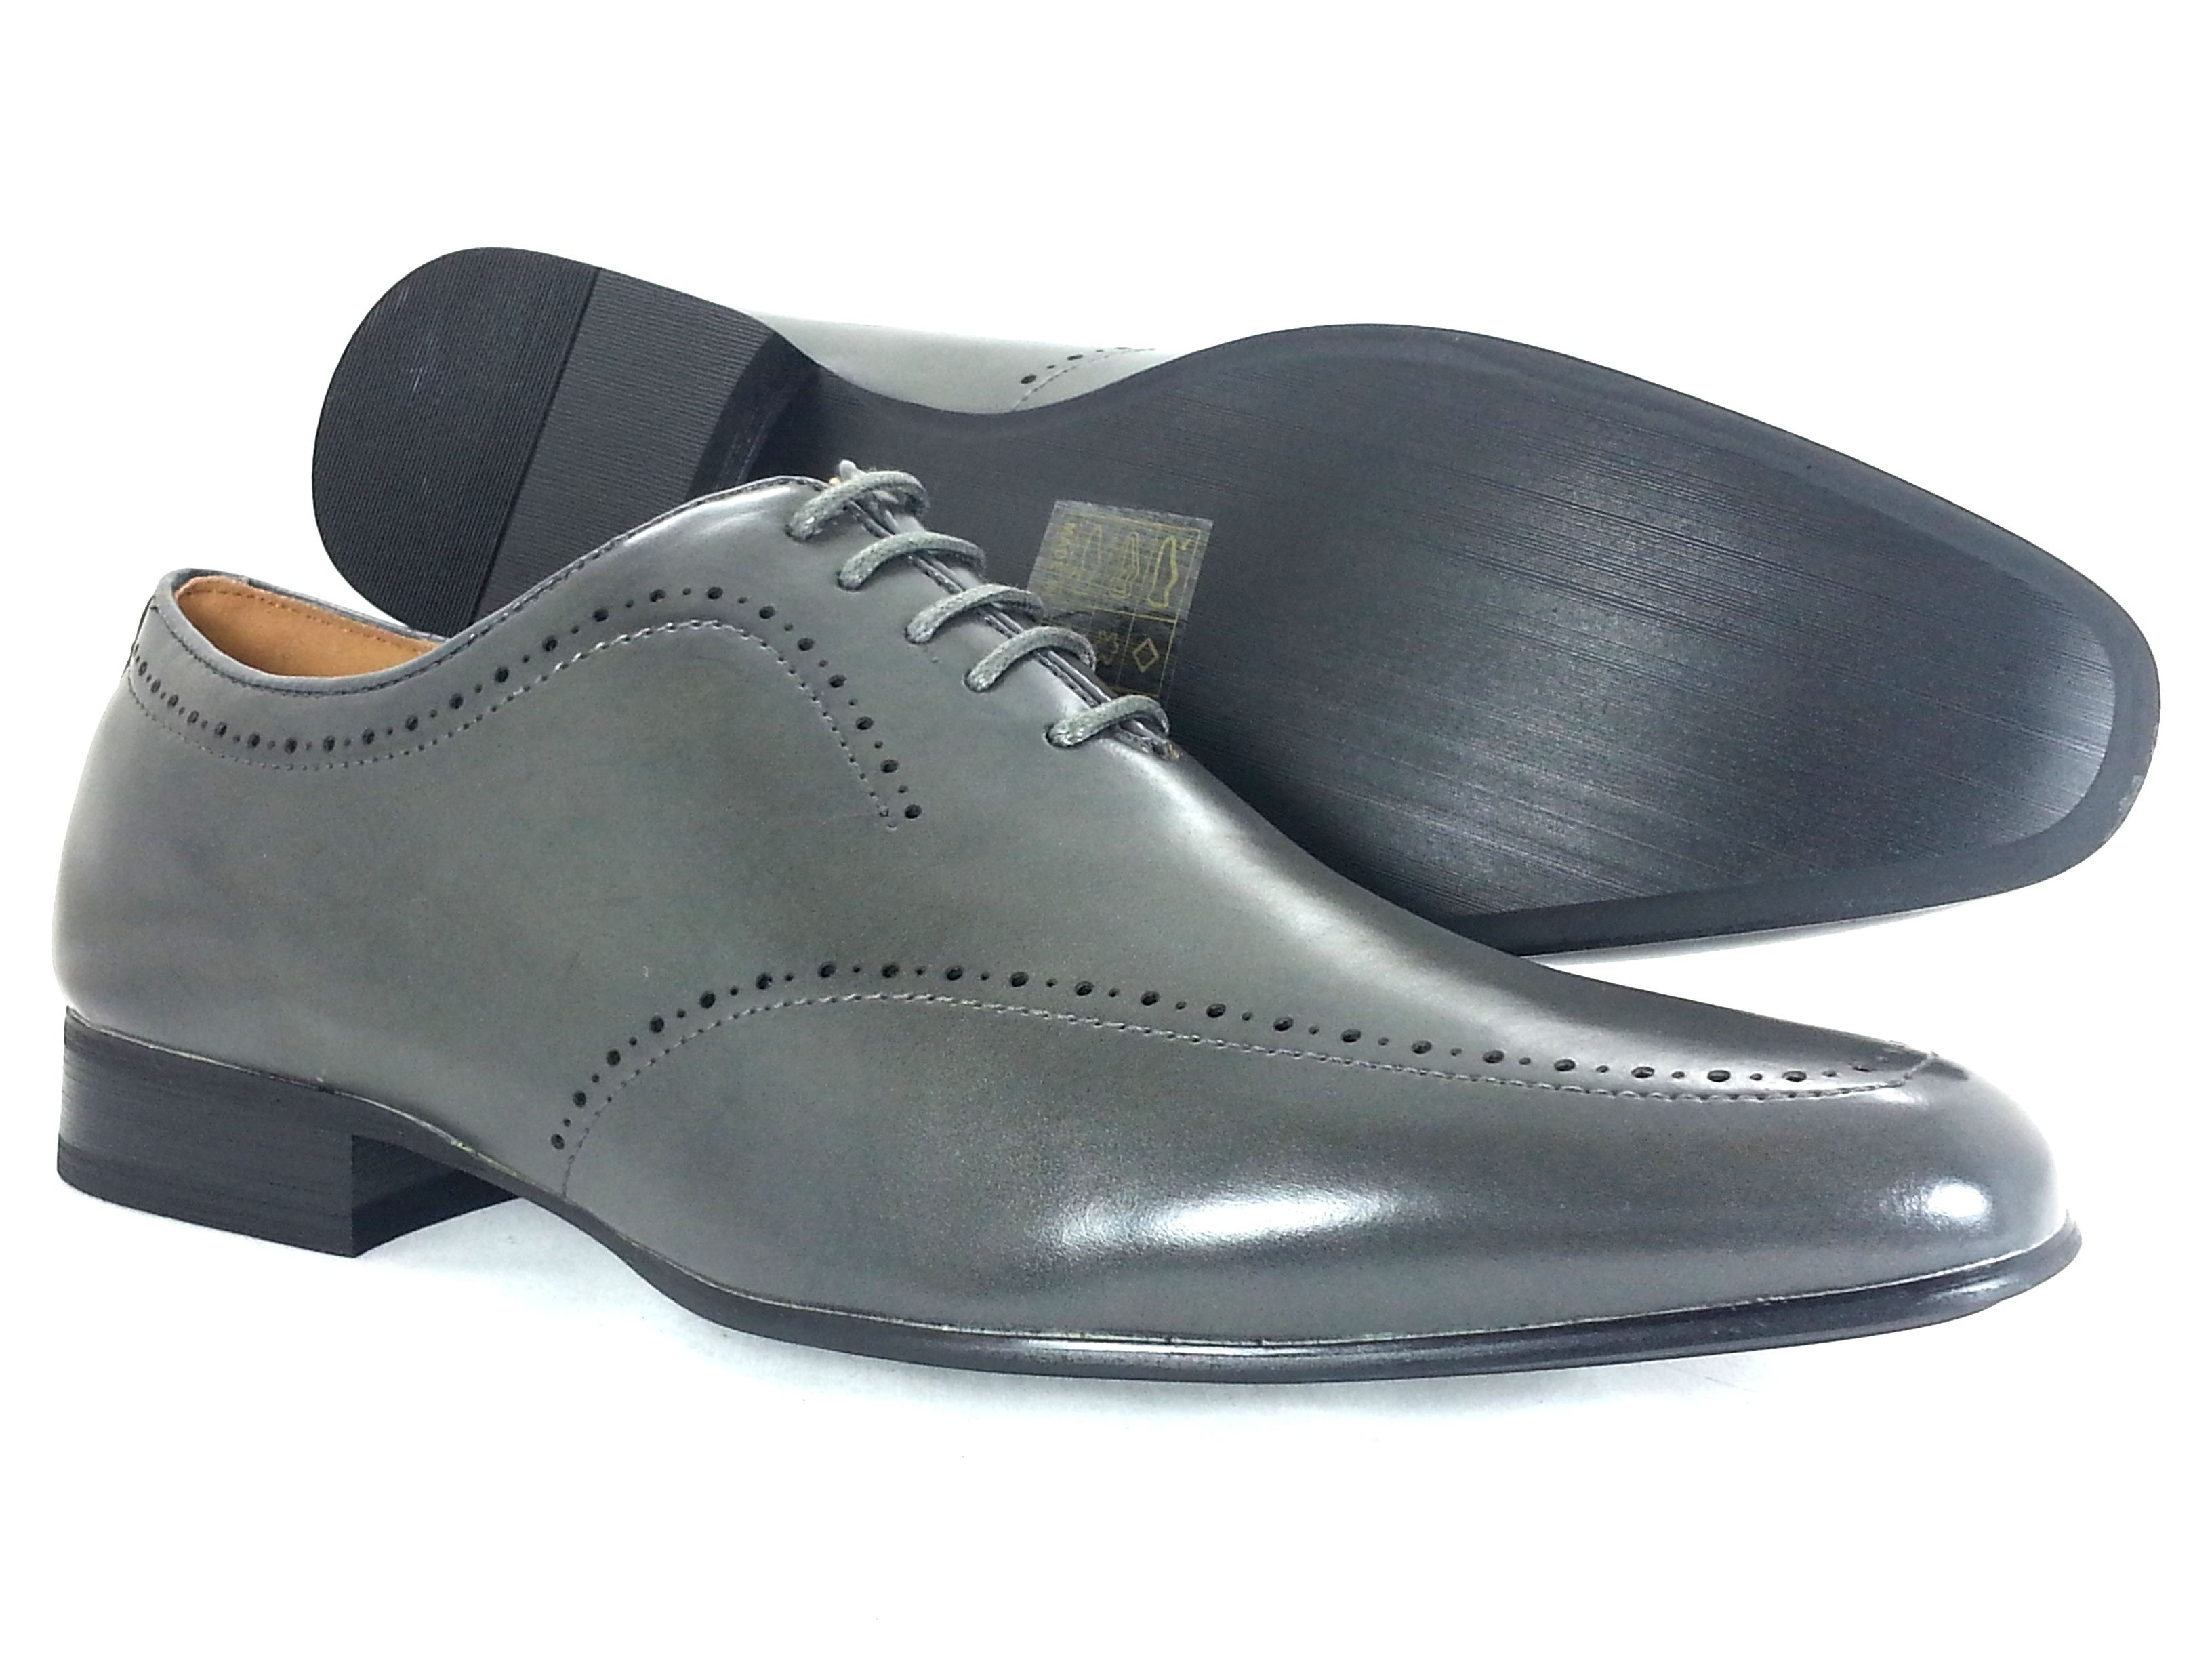 mens dress shoes majestic grey oxford lace up fashion